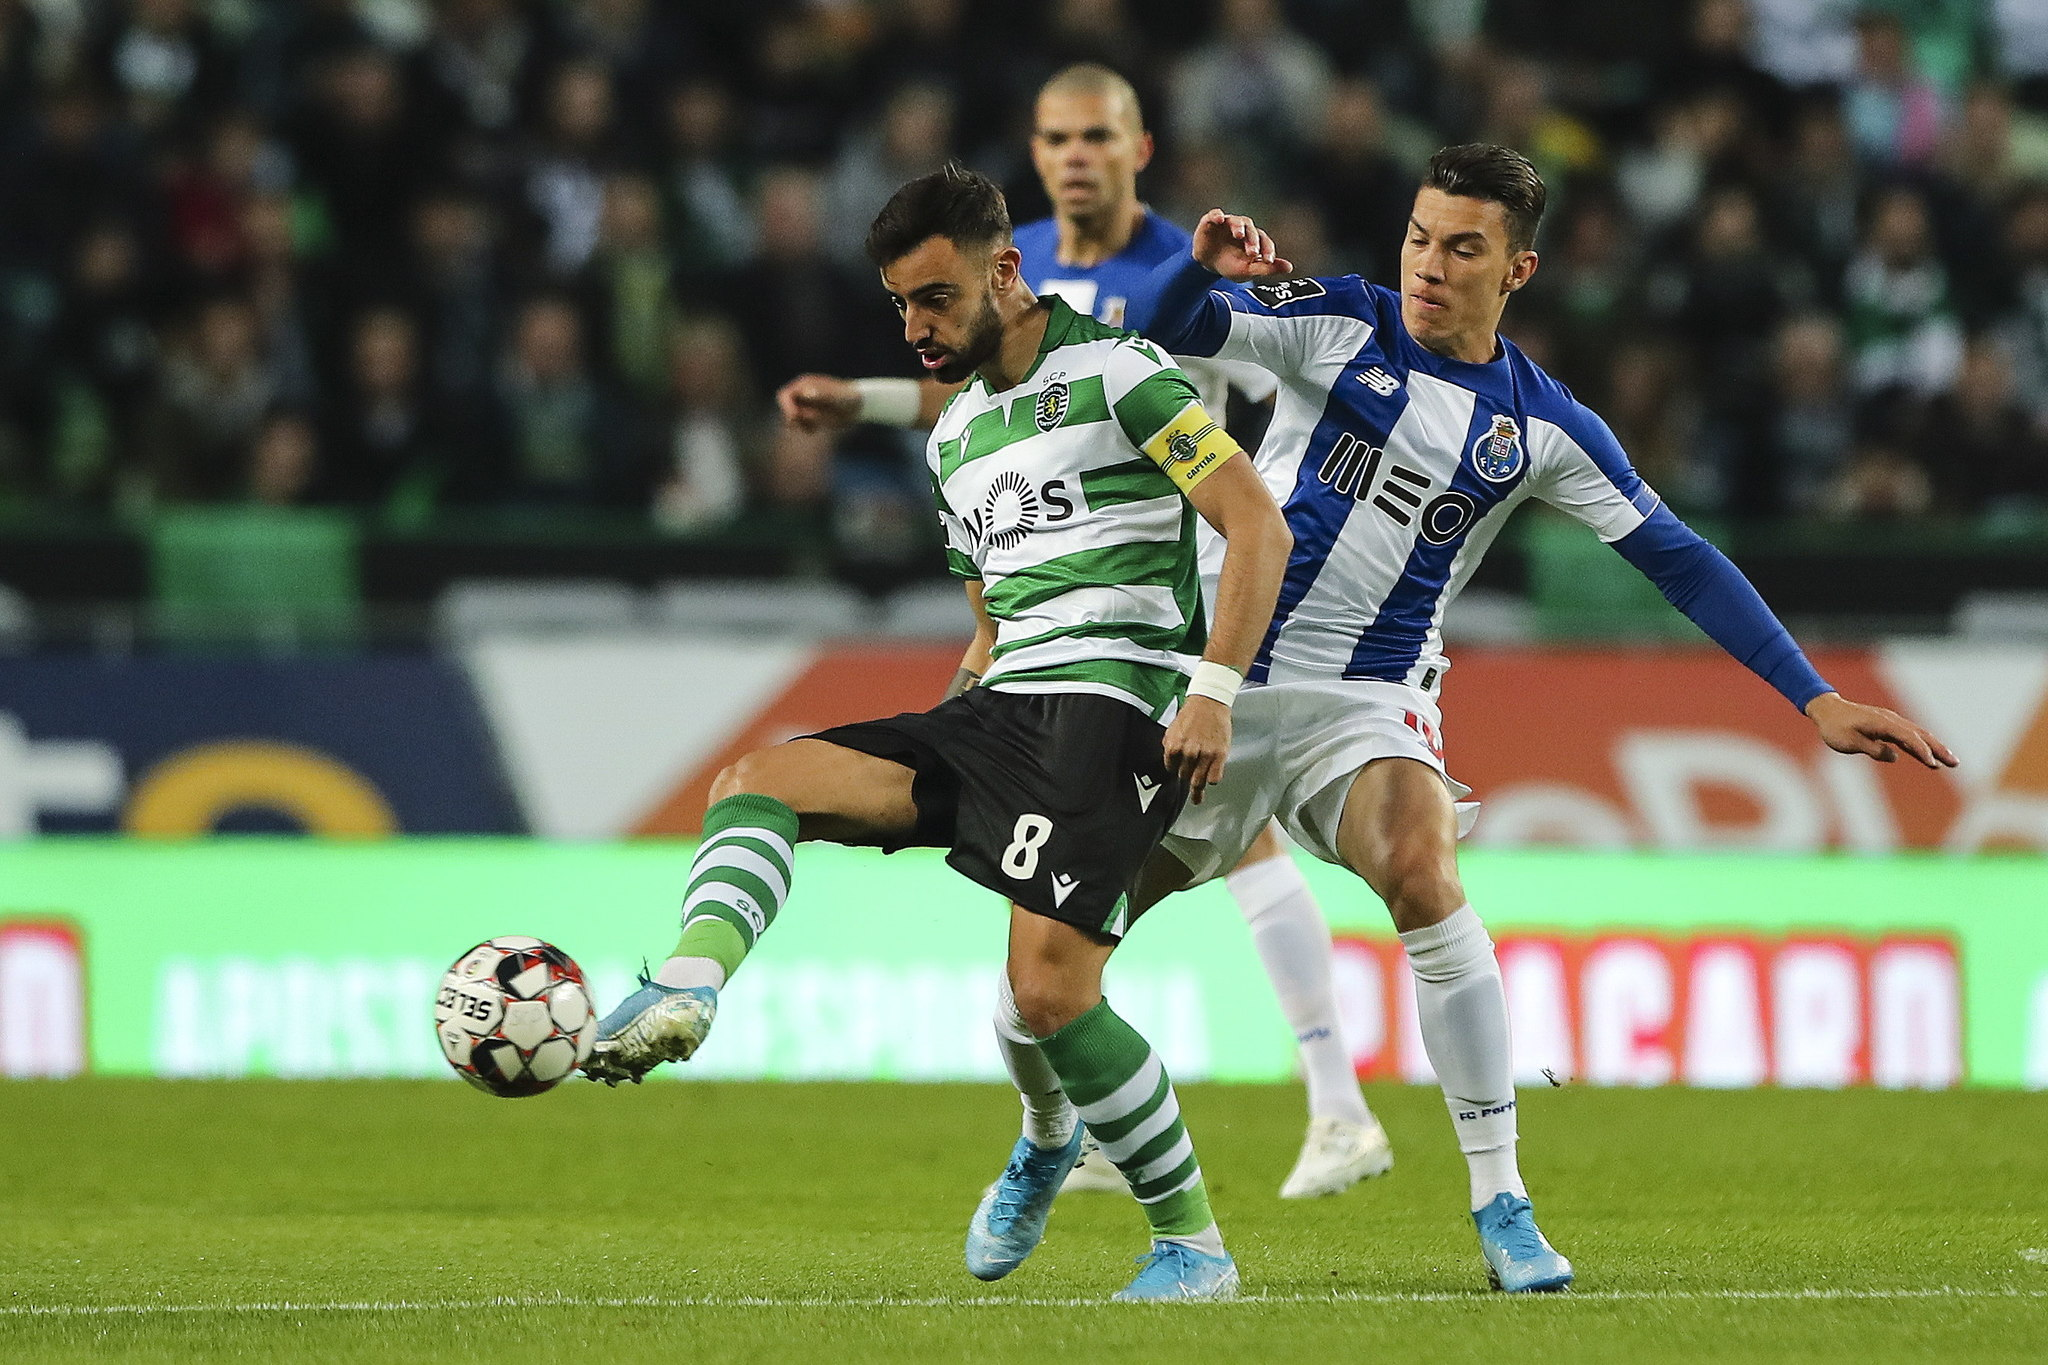 Lisbon (Portugal), 05/01/2020.- <HIT>Bruno</HIT><HIT>Fernandes</HIT> (L) of Sporting fights for the ball with Matheus Uribe of FC Porto during the Portuguese First League soccer match between Sporting CP and FC Porto held at Alvalade Stadium, Lisbon, Portugal, 05 January 2020. (Lisboa) EFE/EPA/MIGUEL A. LOPES